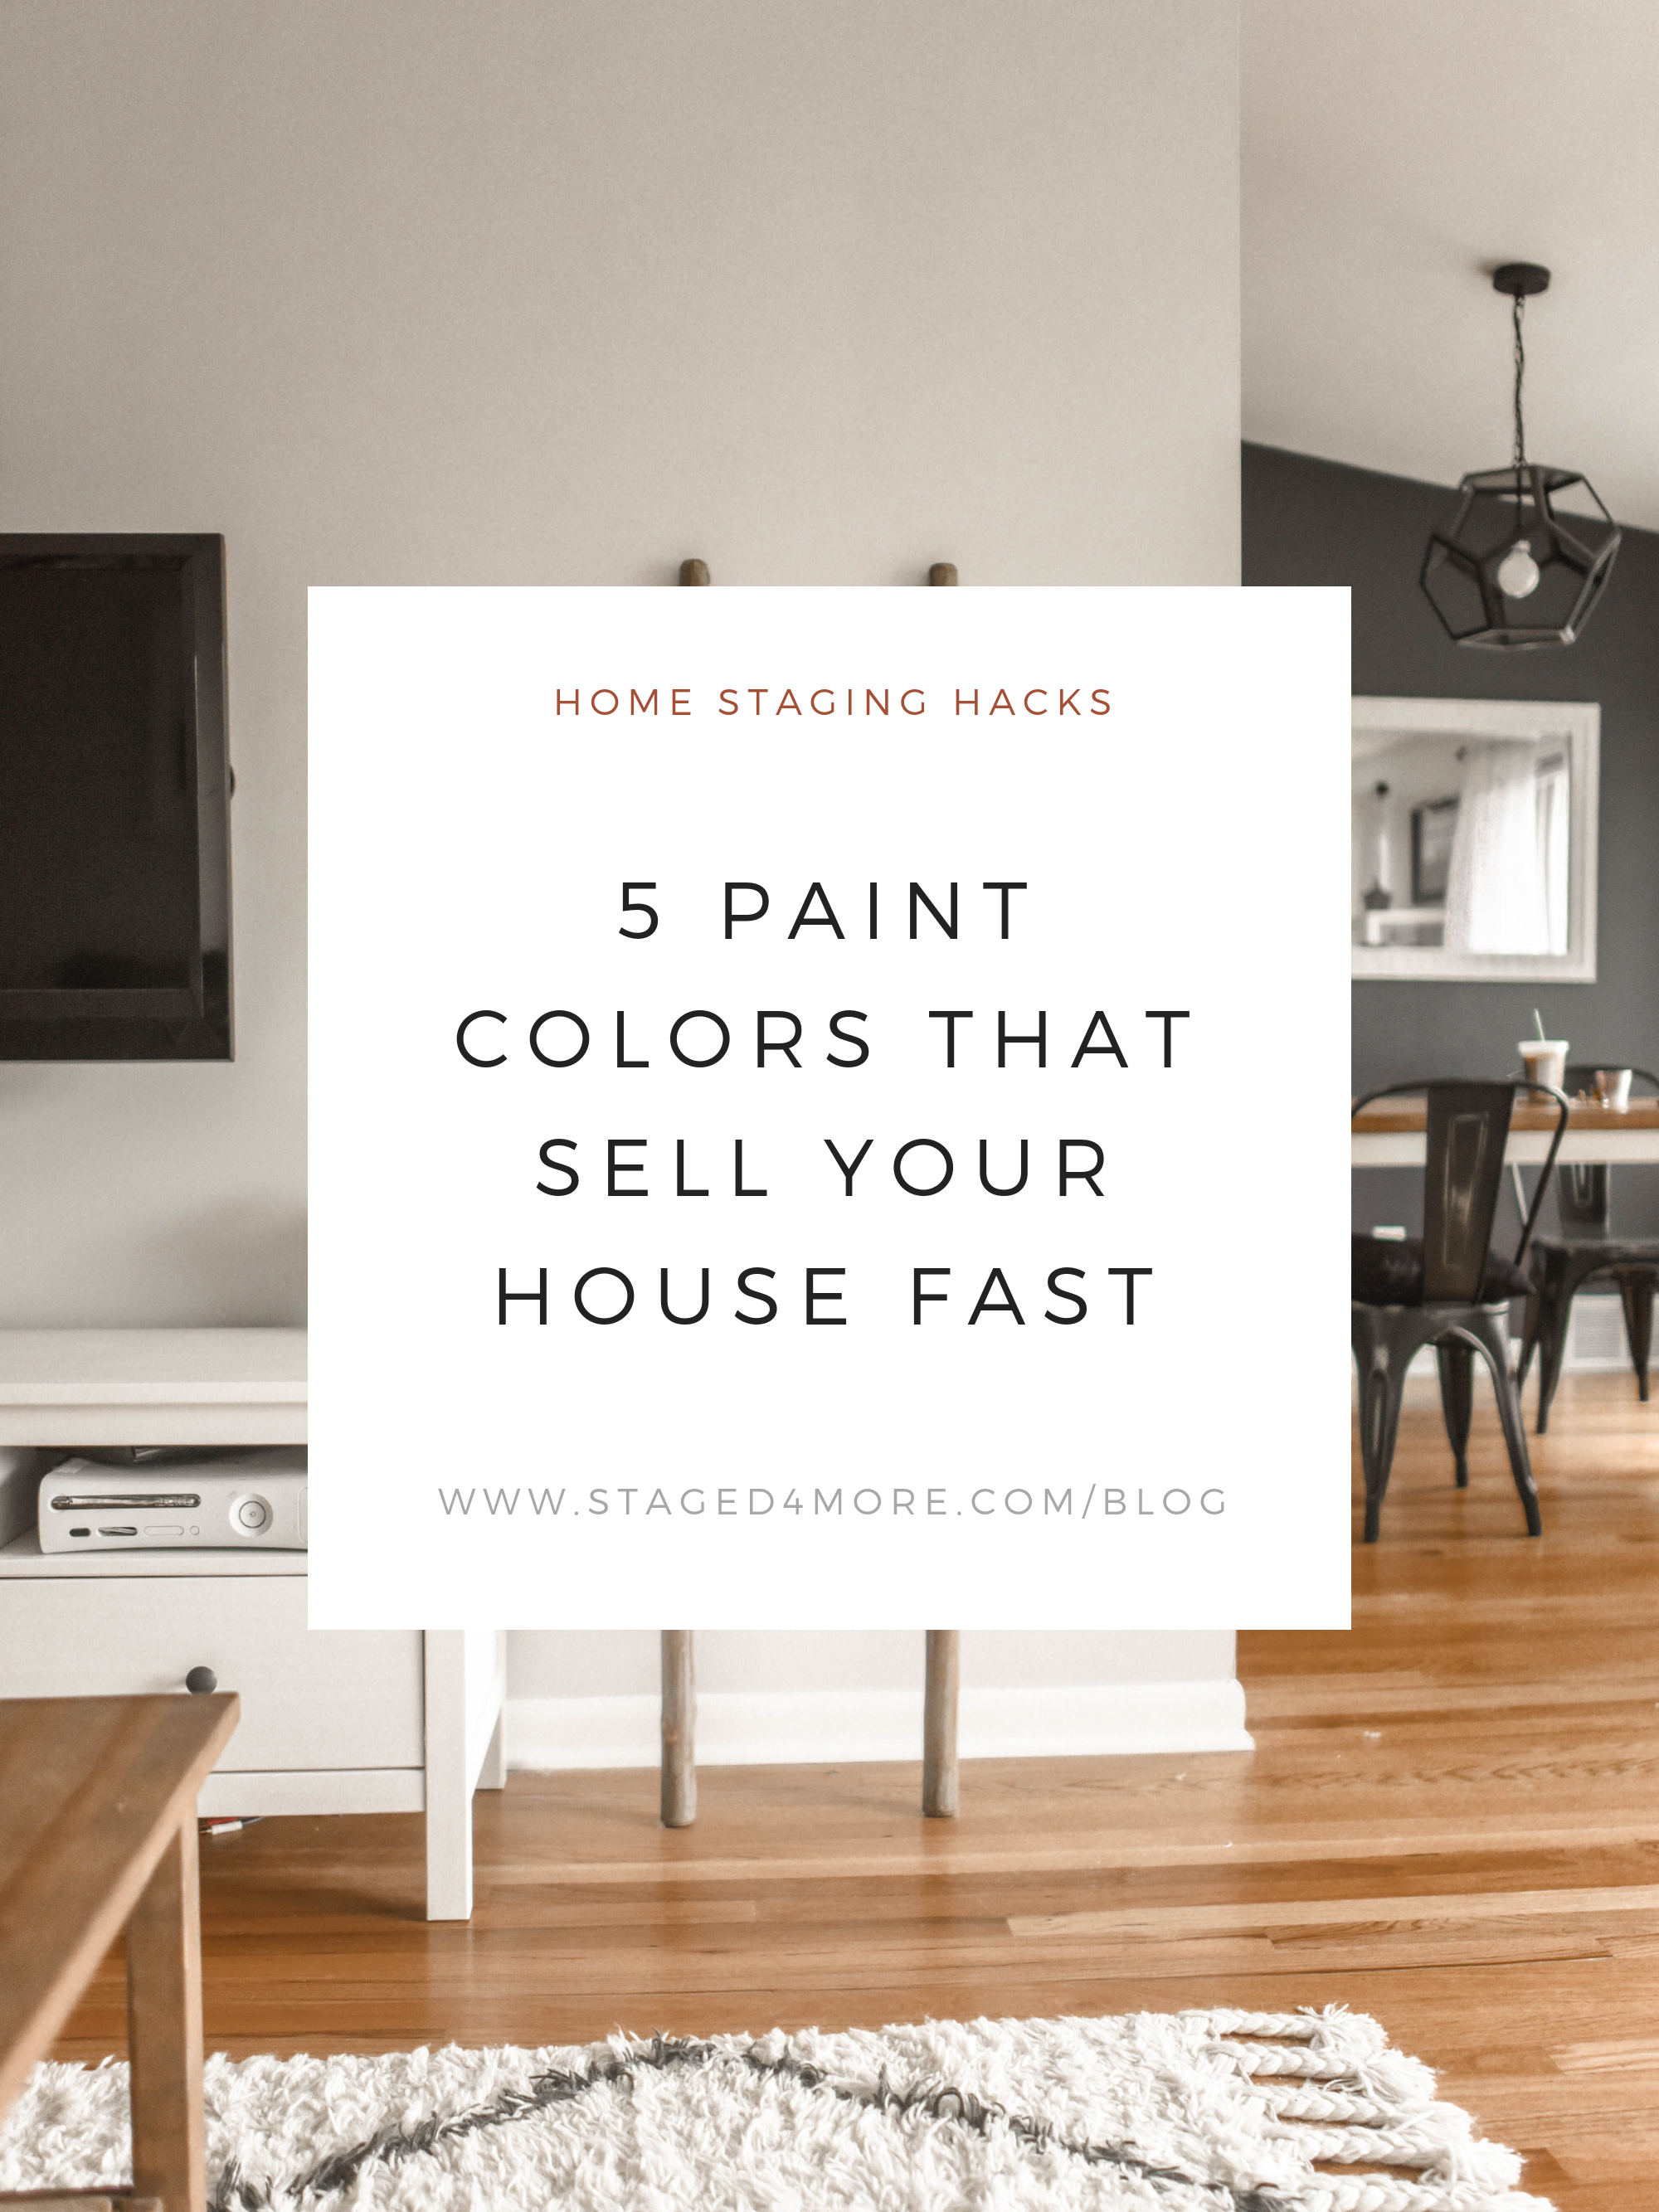 5 Paint Colors That Sell Your Home Fast Staged4more Sell Your House Fast Home Staging Home Selling Tips